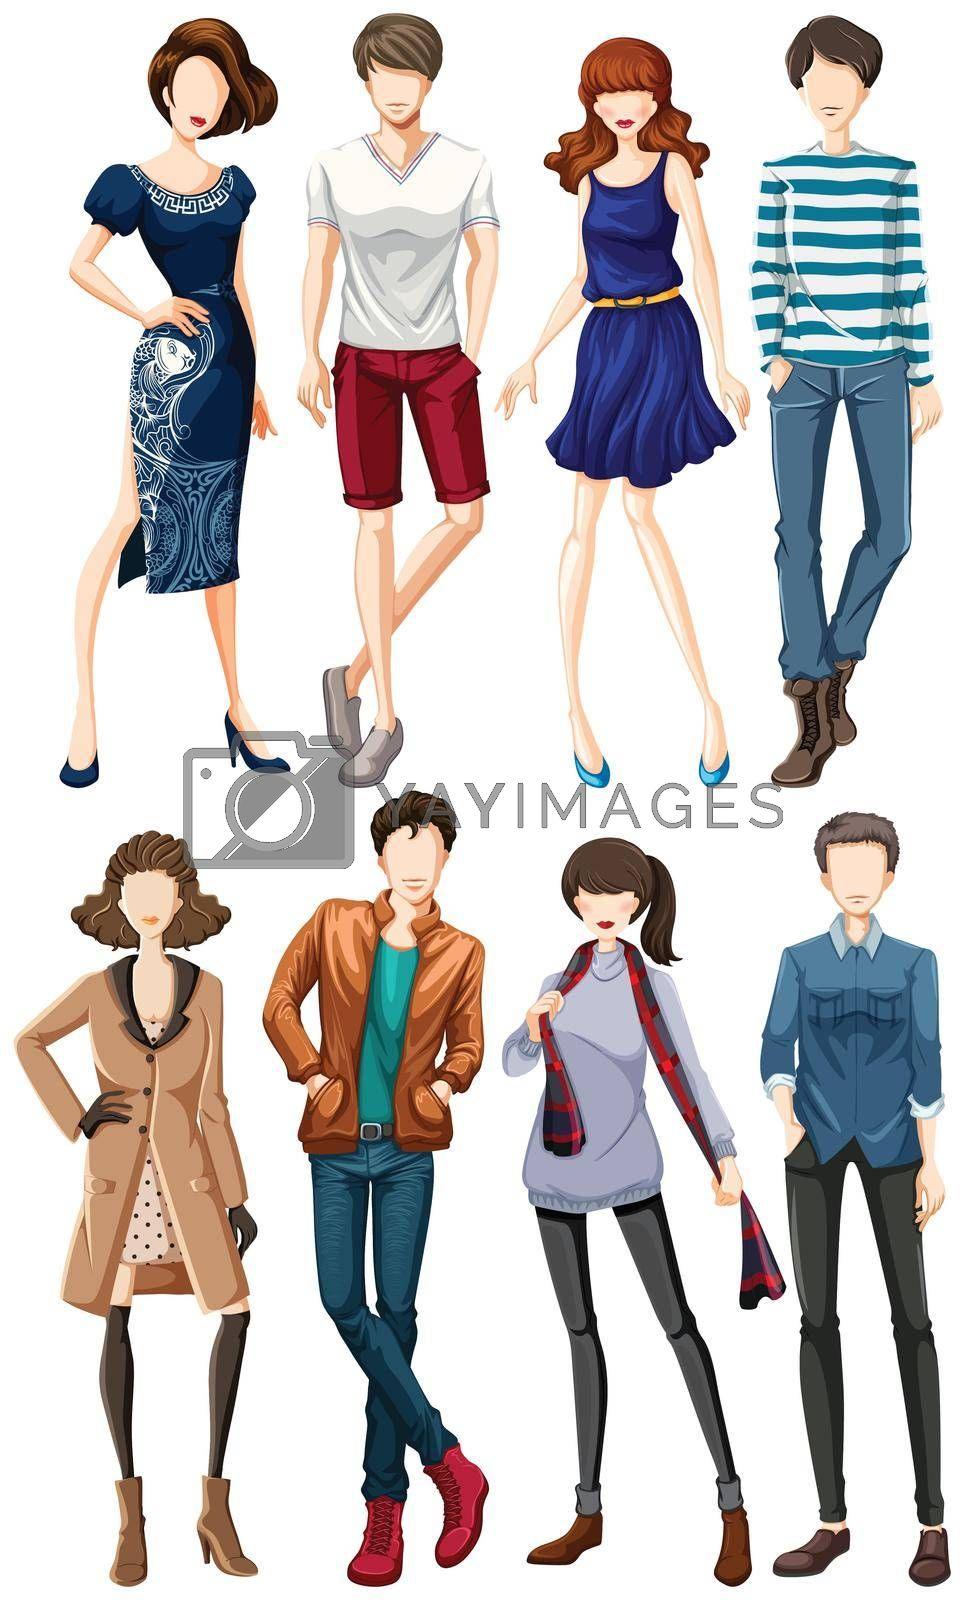 Royalty free image of Fashion by iimages